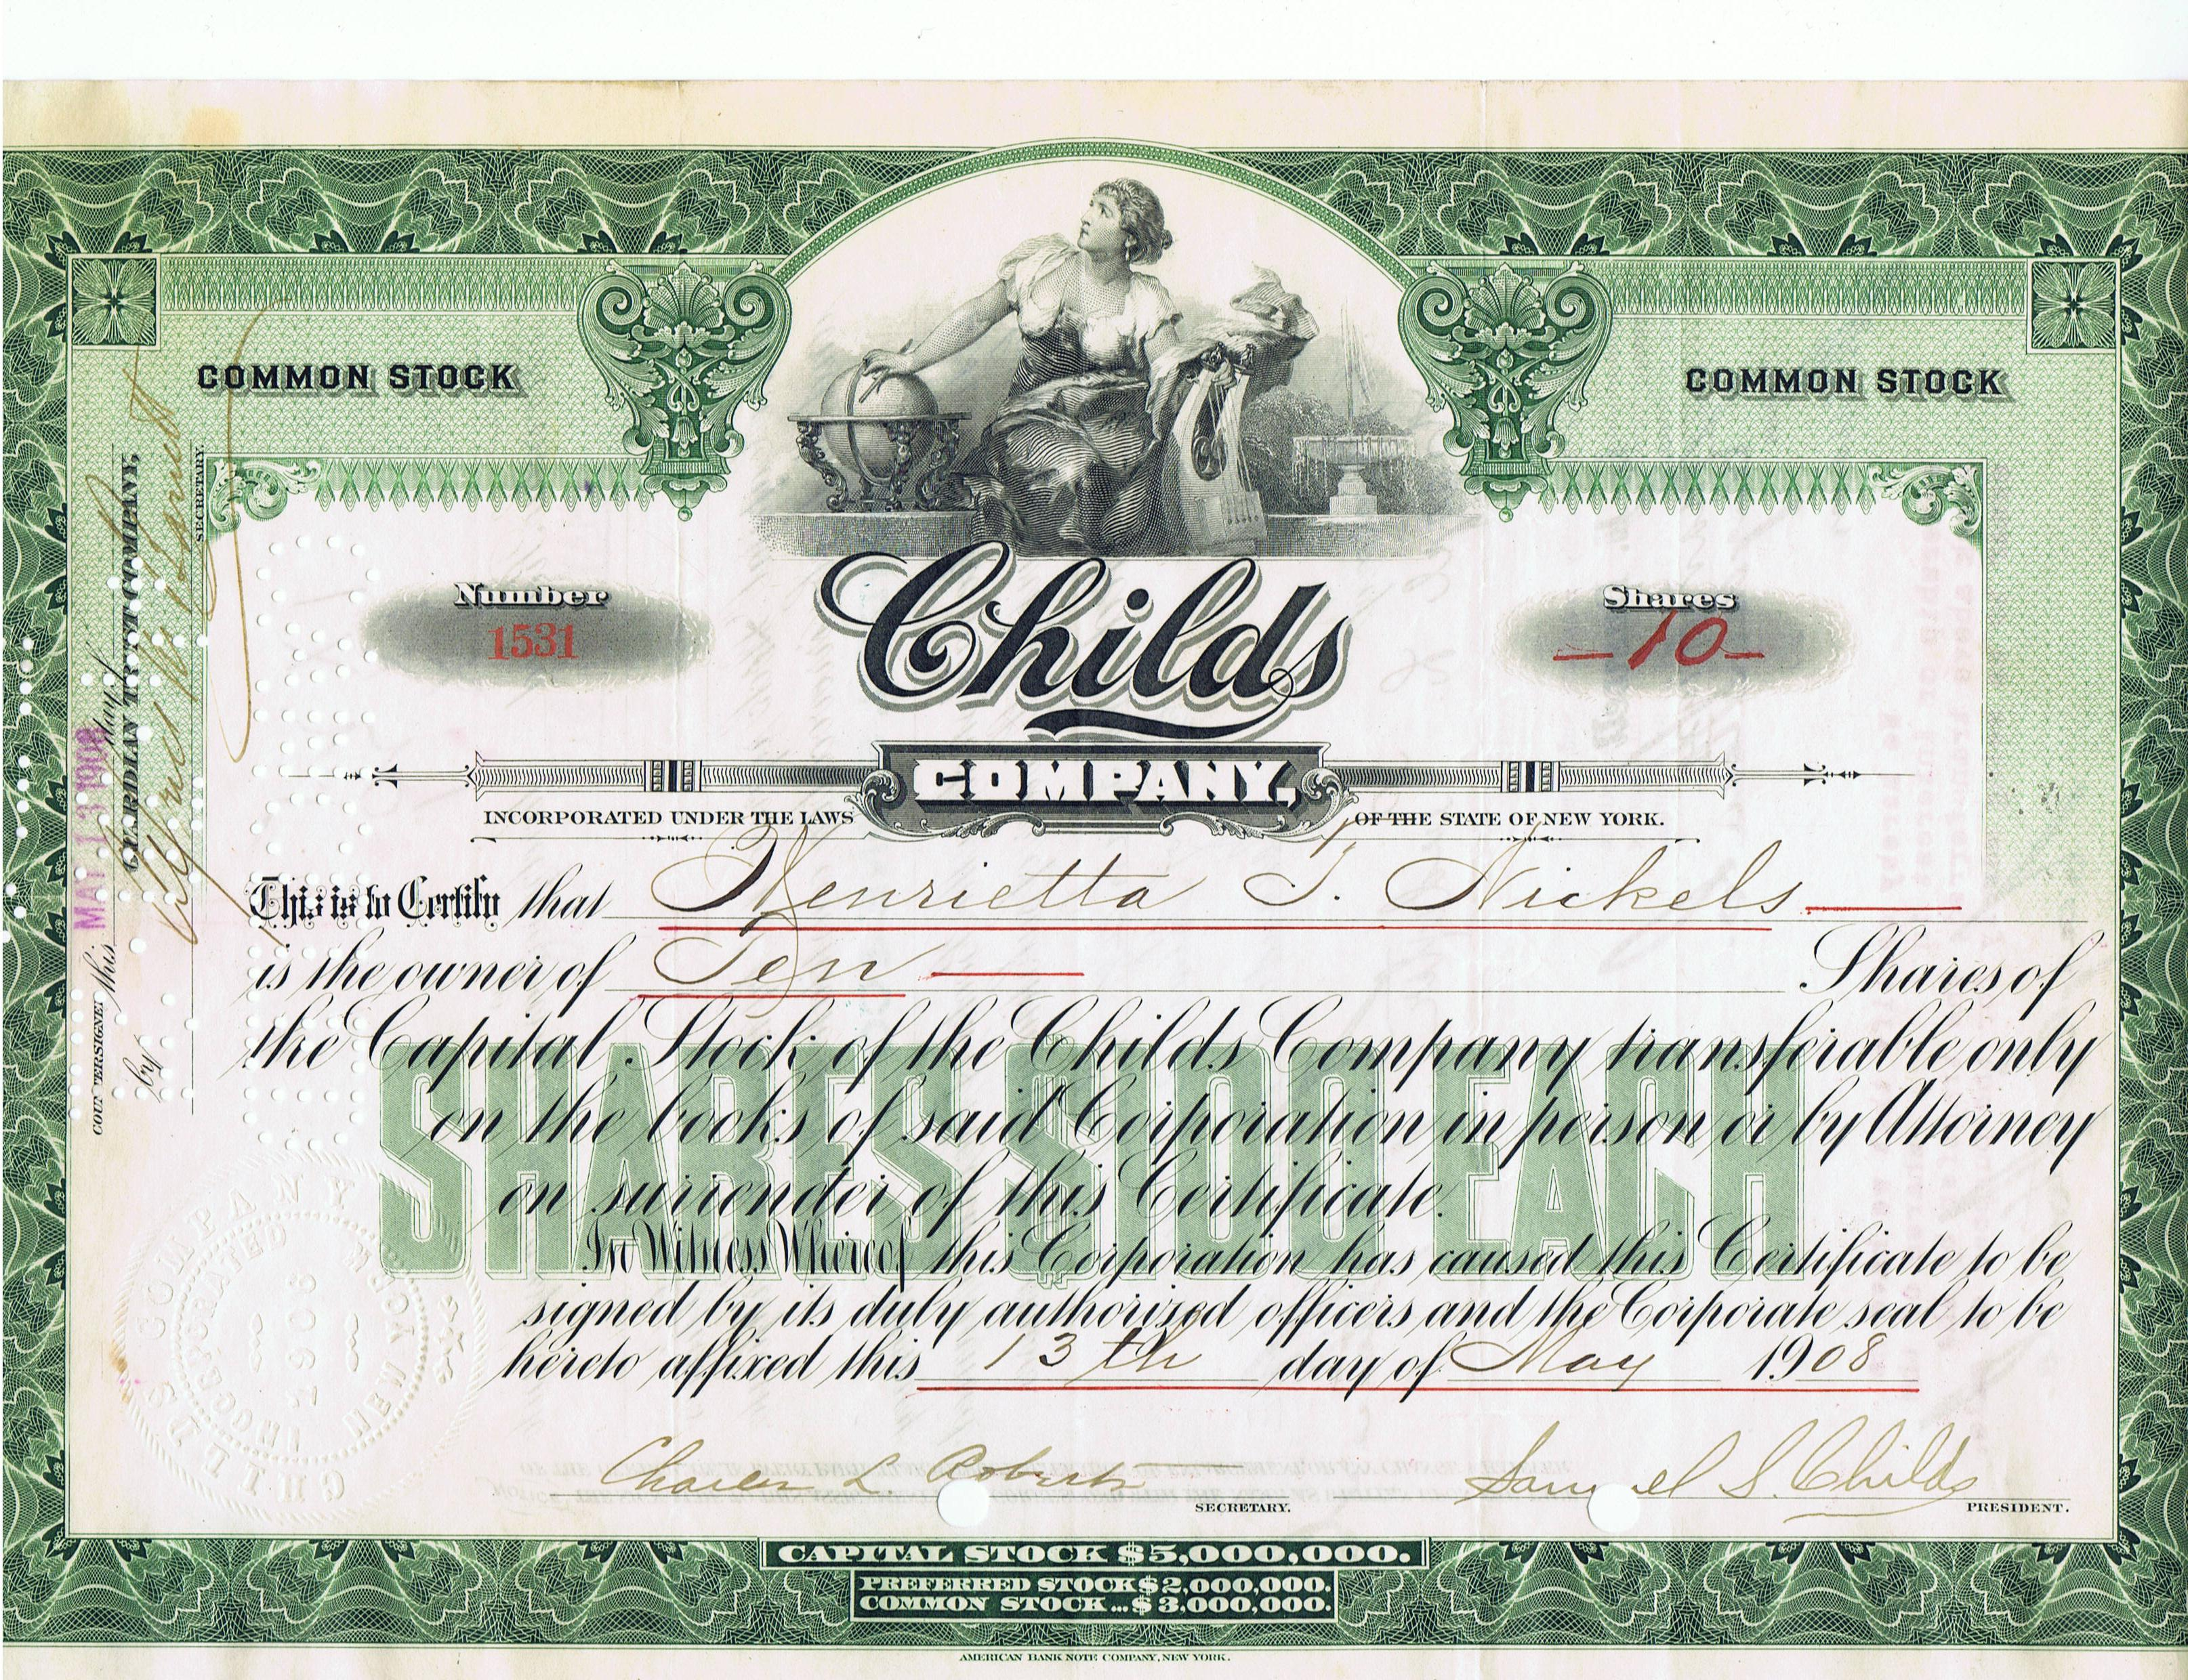 Filechilds company stock certificate 1908g wikipedia filechilds company stock certificate 1908g xflitez Choice Image